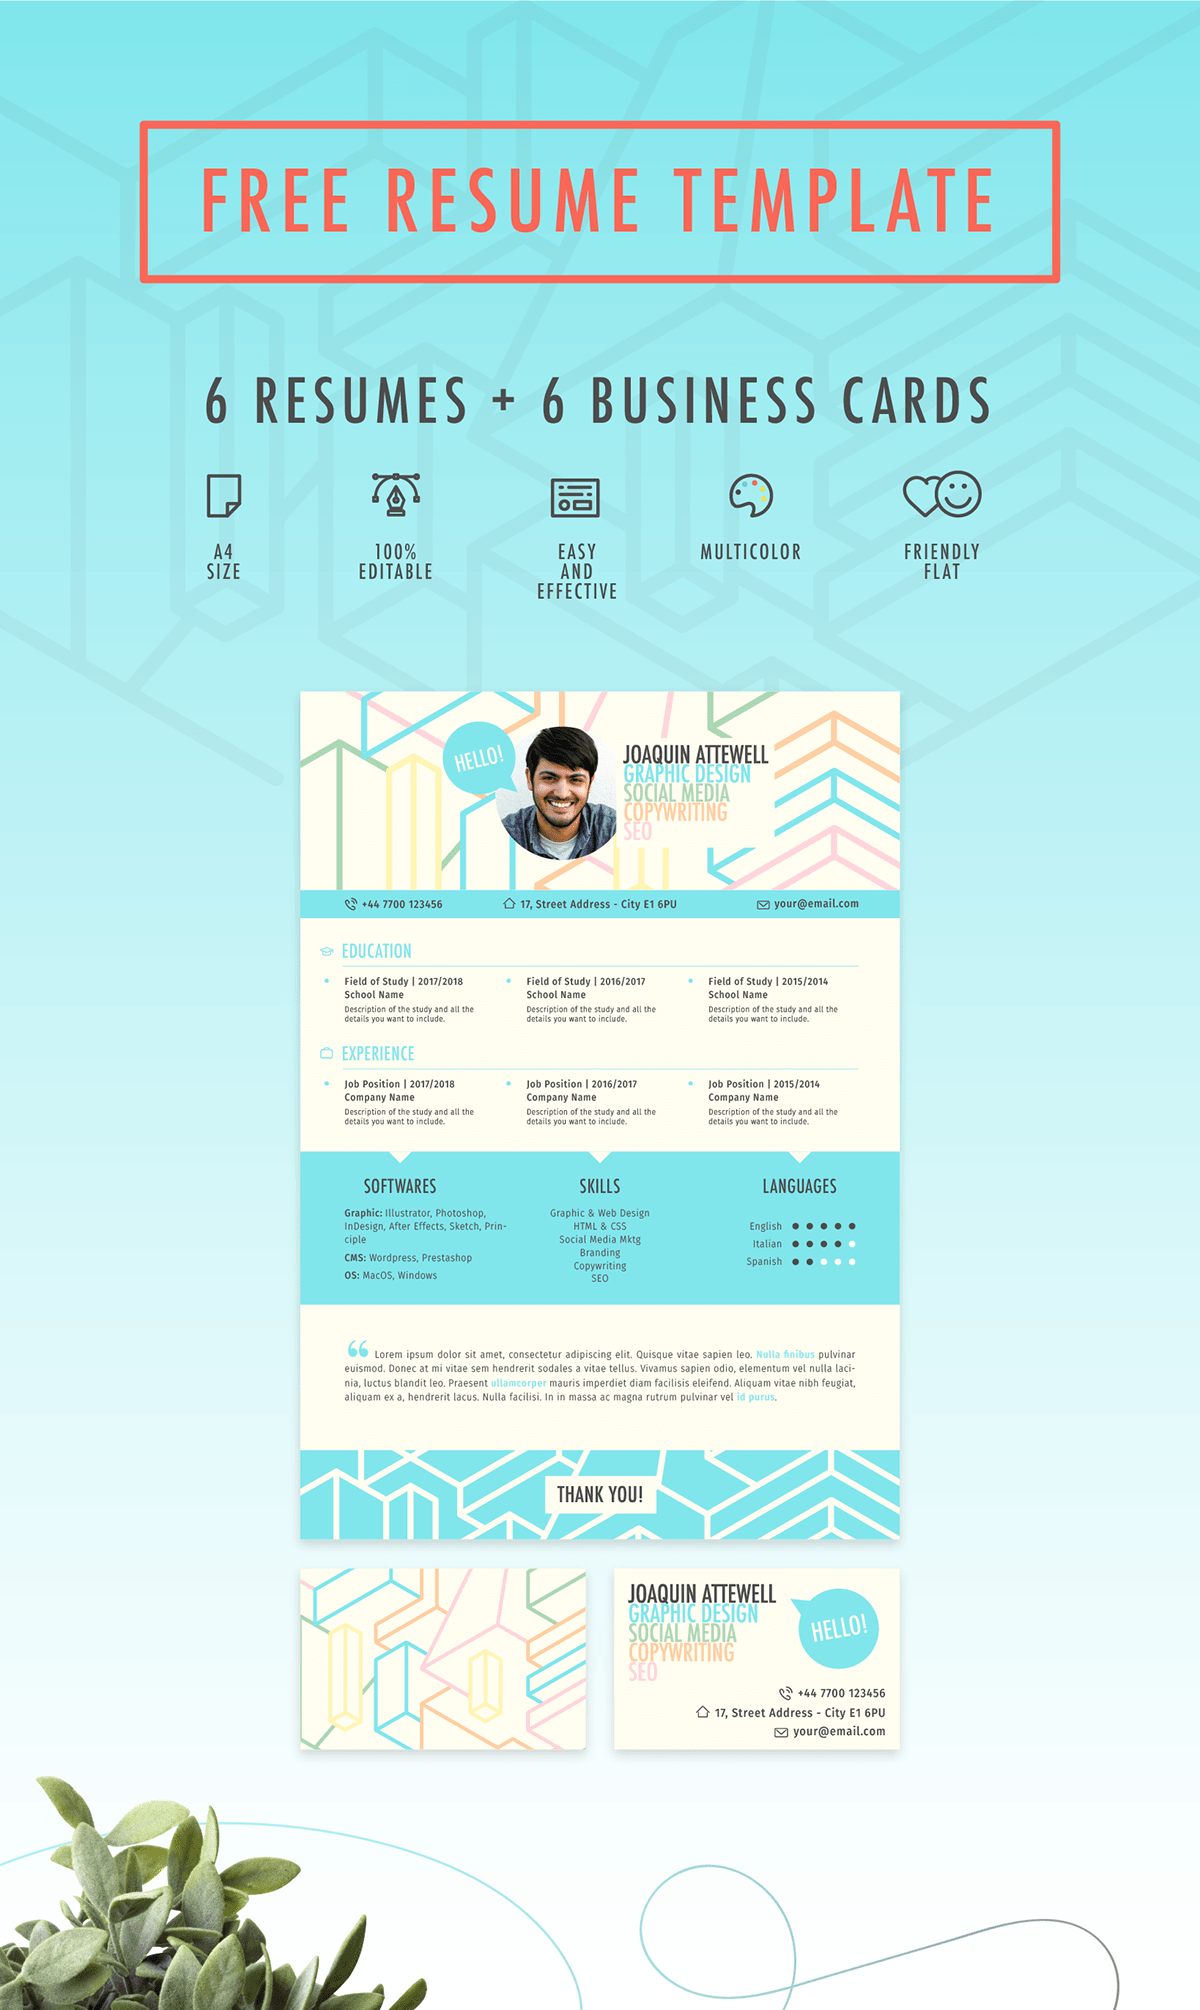 Colorful Free Resume Template 2017